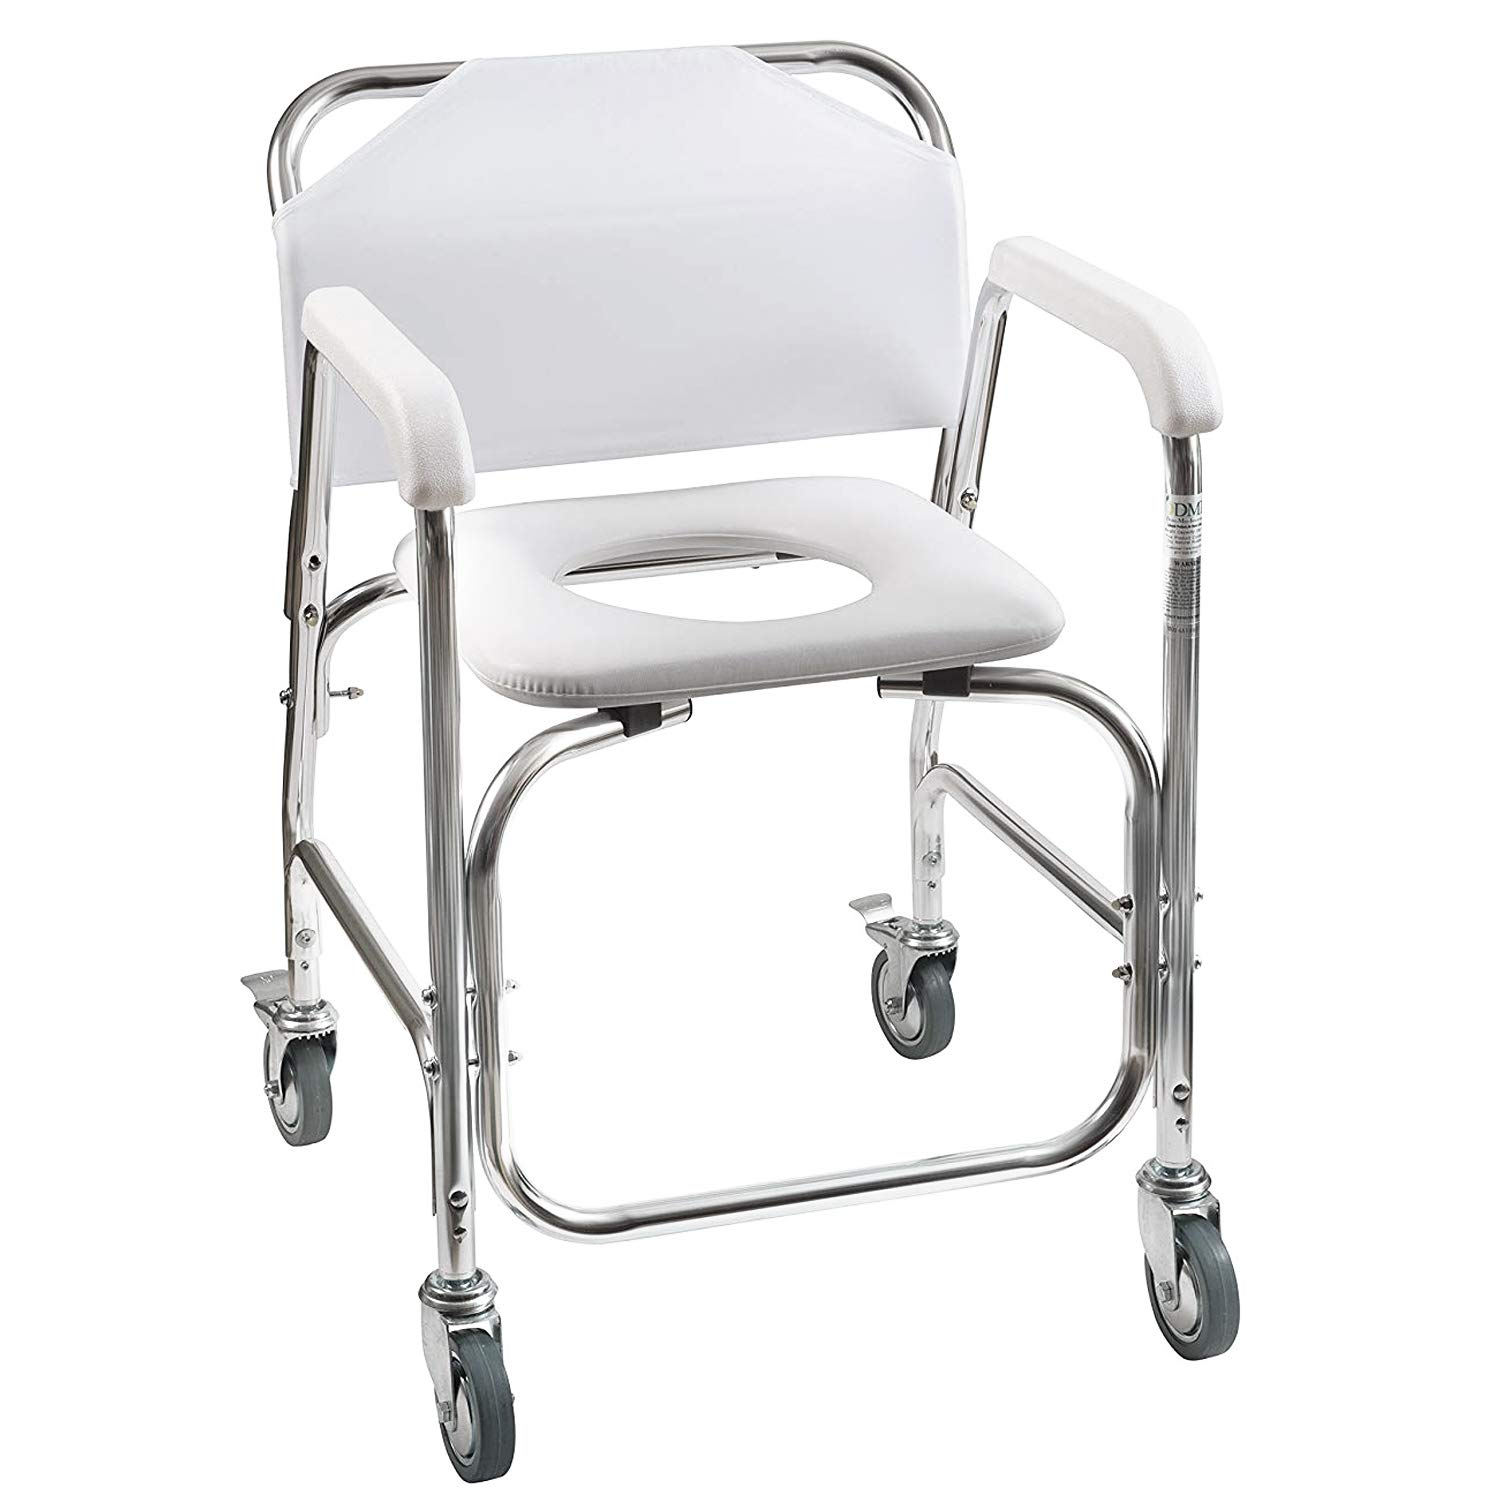 DMI Rolling Shower and Commode Transport Chair with Wheels and Padded Seat for Handicap, Elderly, Injured and Disabled, 250 lb Weight Capacity by DMI